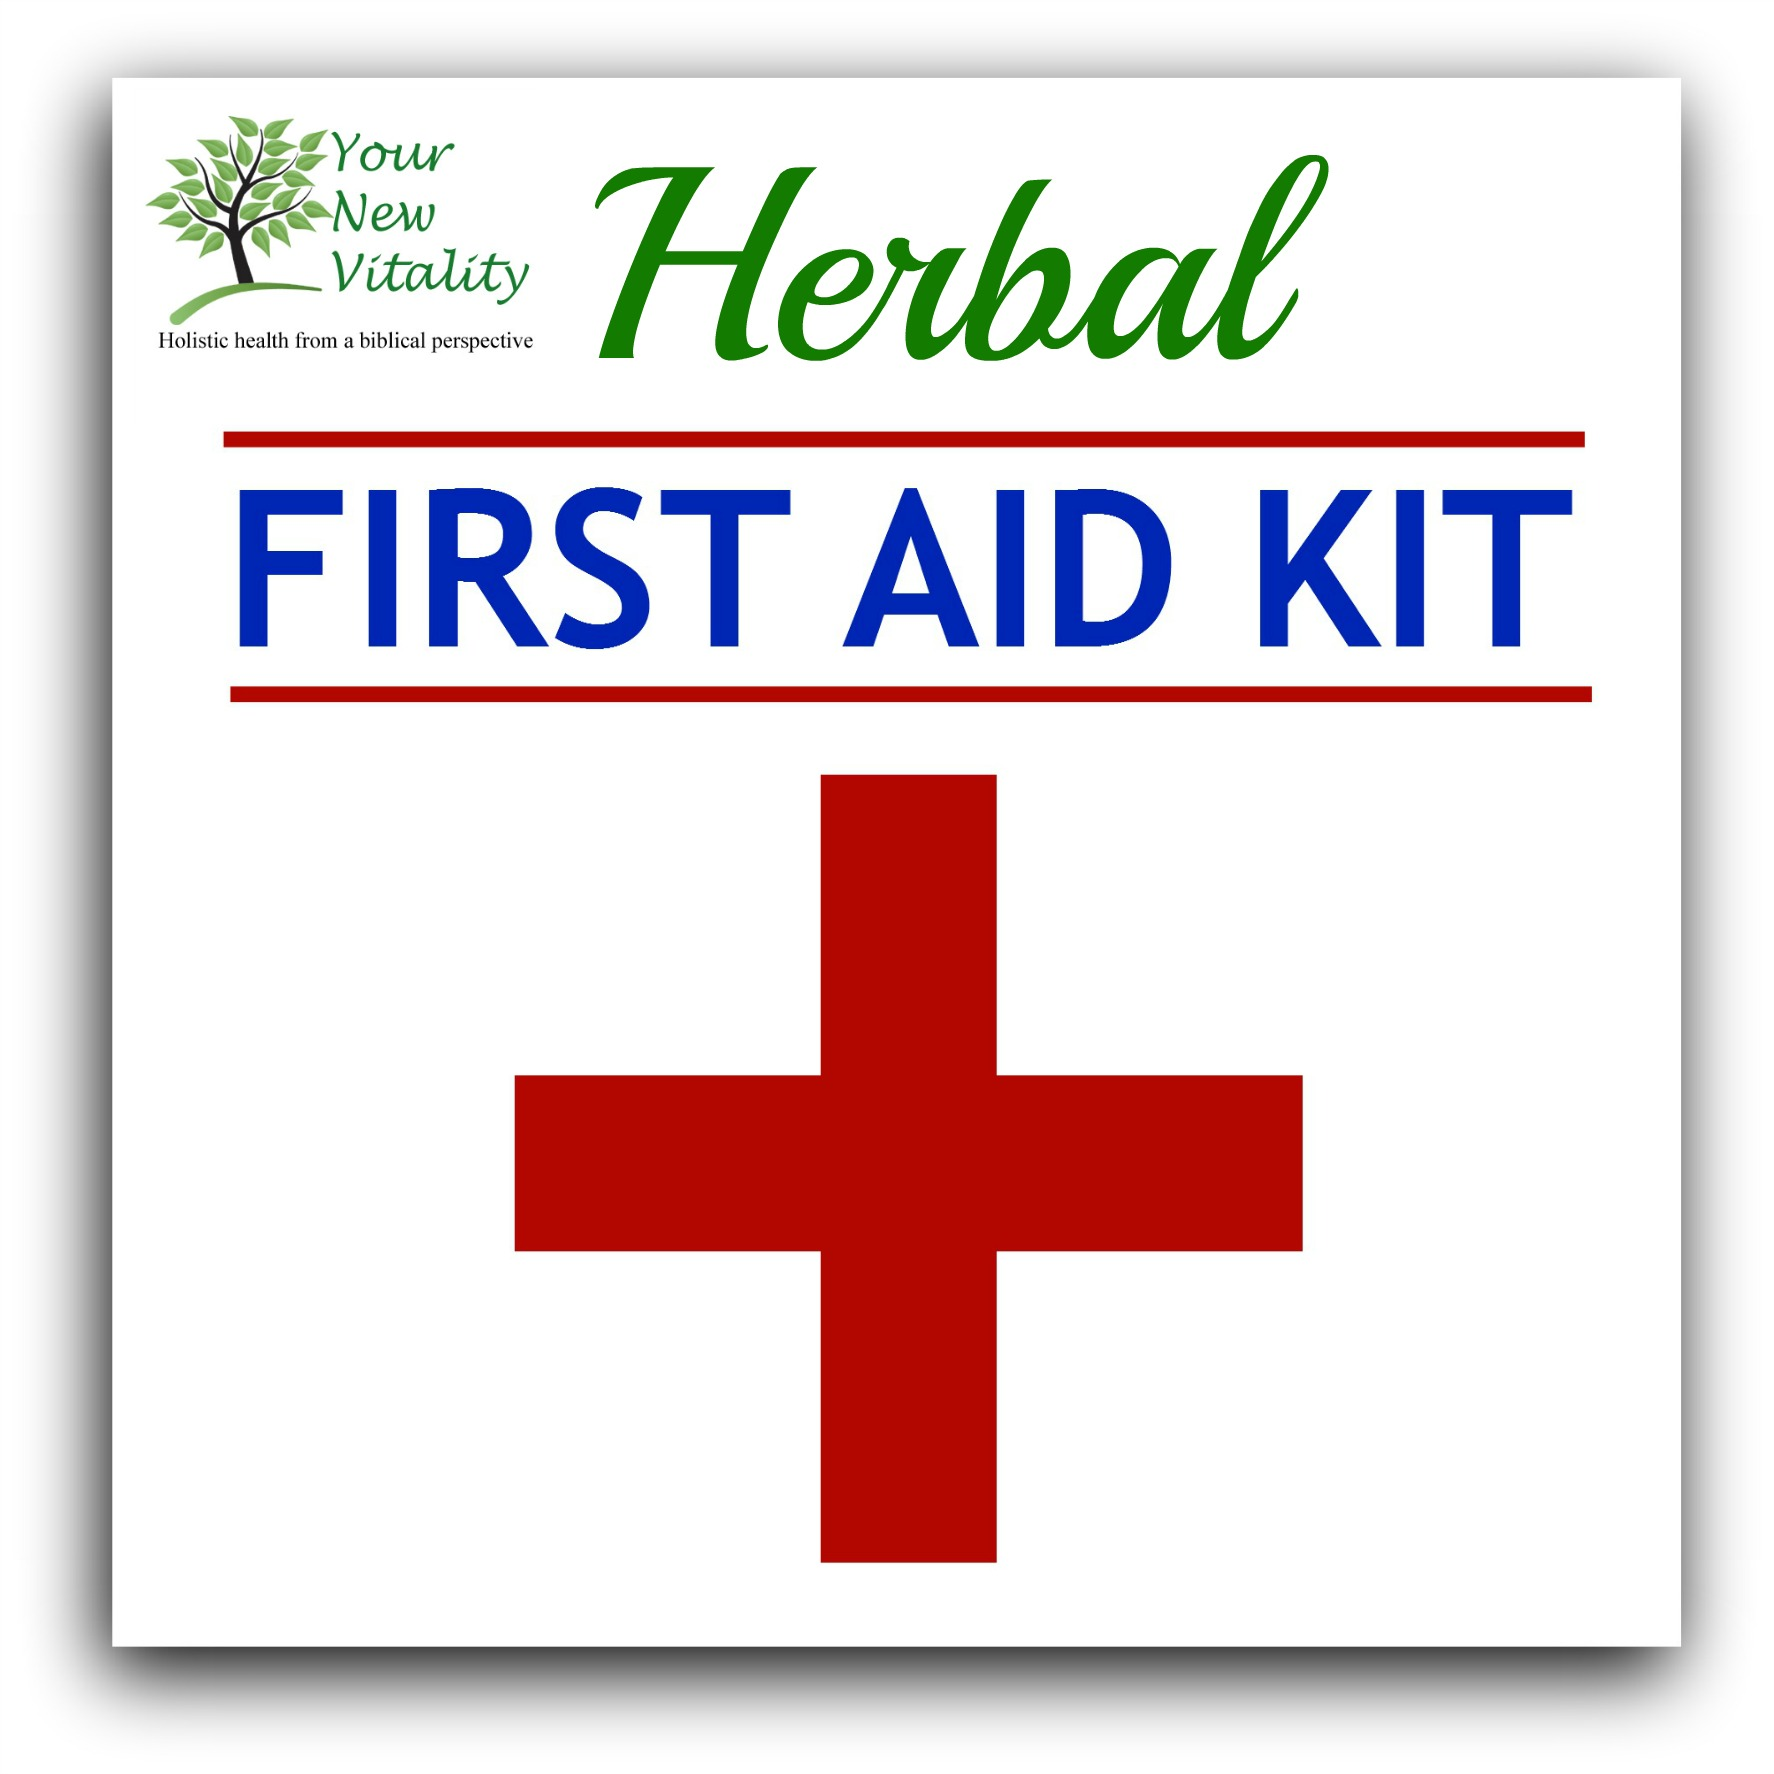 FIRST AID KIT JULIE made on picmonkey2